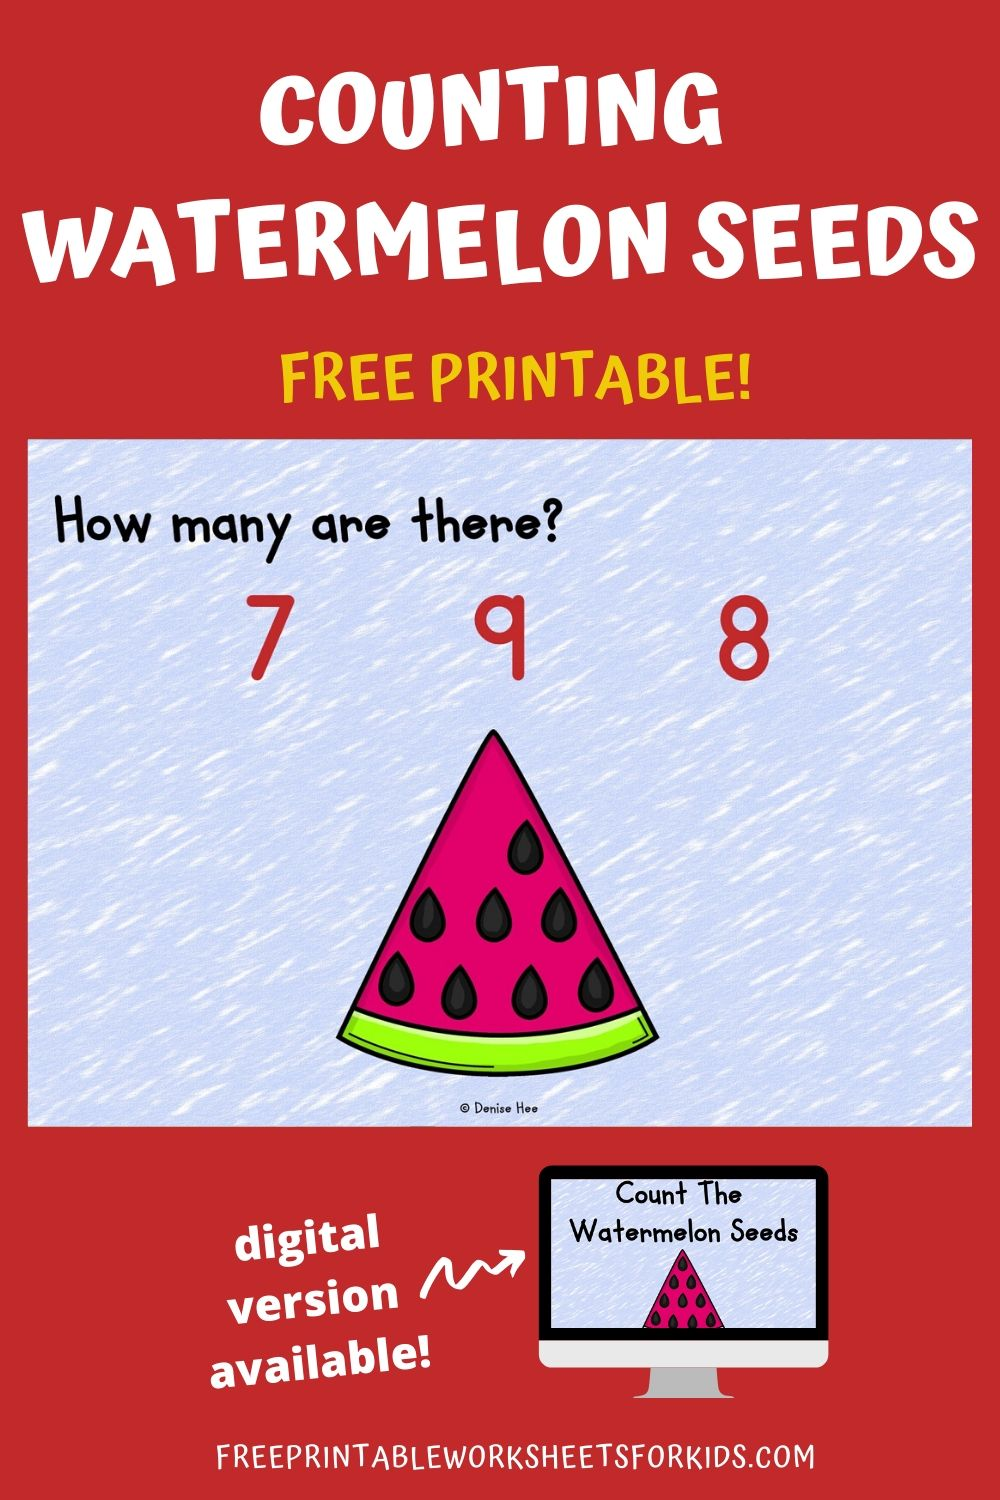 Count The Watermelon Seeds 1-10 | Free Printable Worksheets For Kids | This watermelon themed game is perfect for learning how to count to 10 this summer. Grab some wooden pegs and your kids will be ready for some refreshingly good fun!